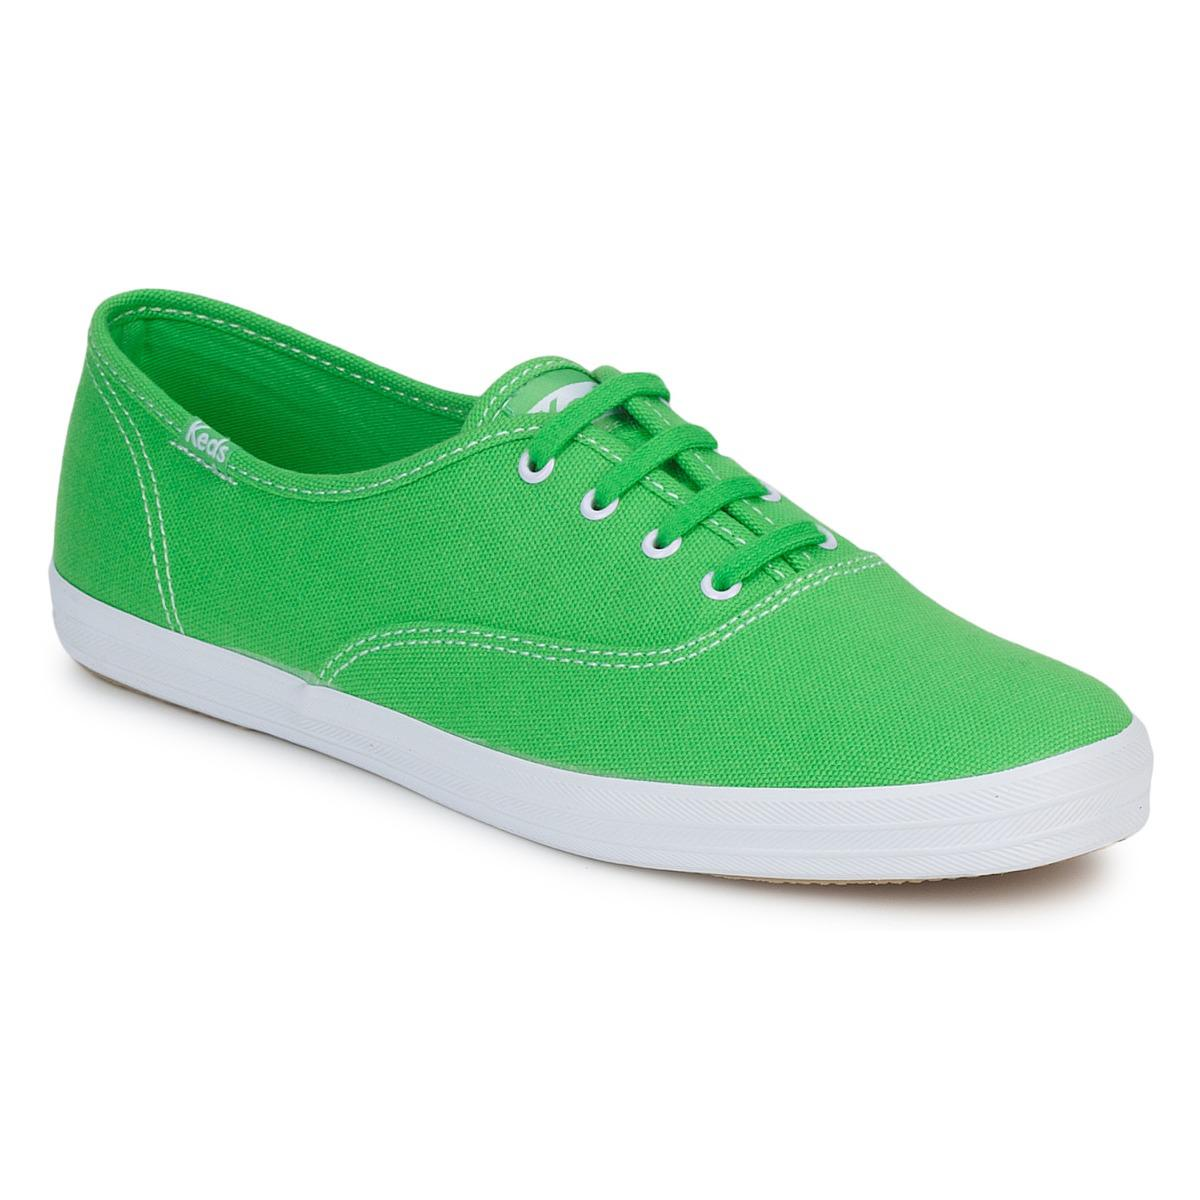 613306ac2ac0 Keds Champion Cvo Canvas Shoes (trainers) in Green - Lyst